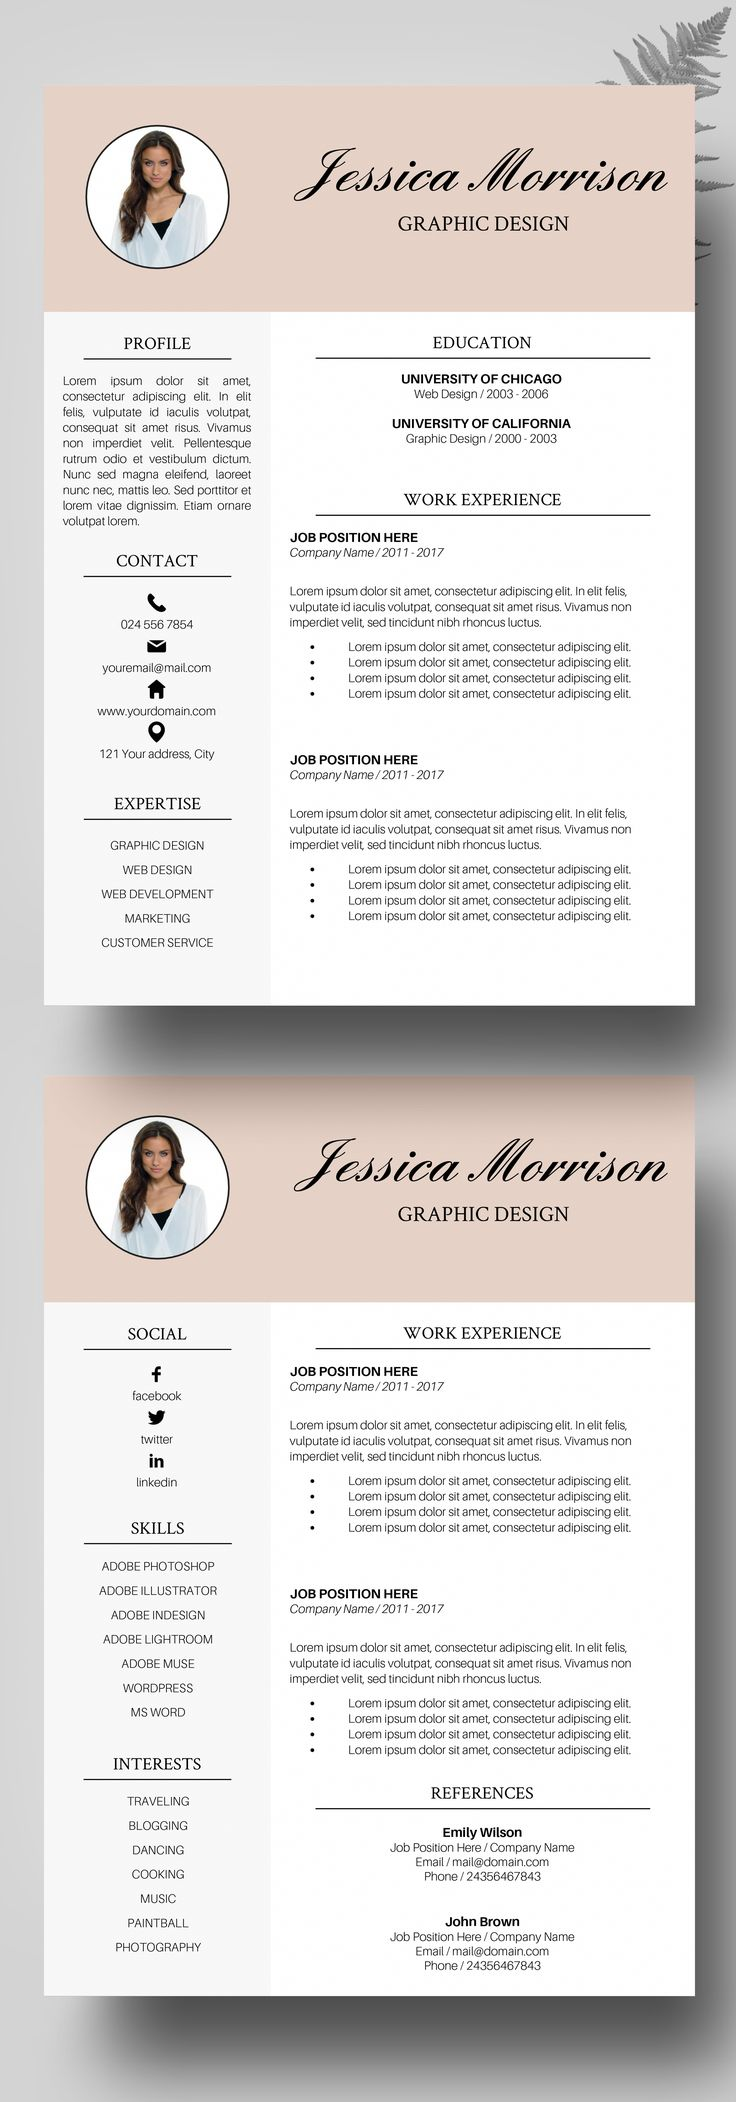 Resume Template, CV Template For MS Word, Resume Modern, Professional Resume,  Creative